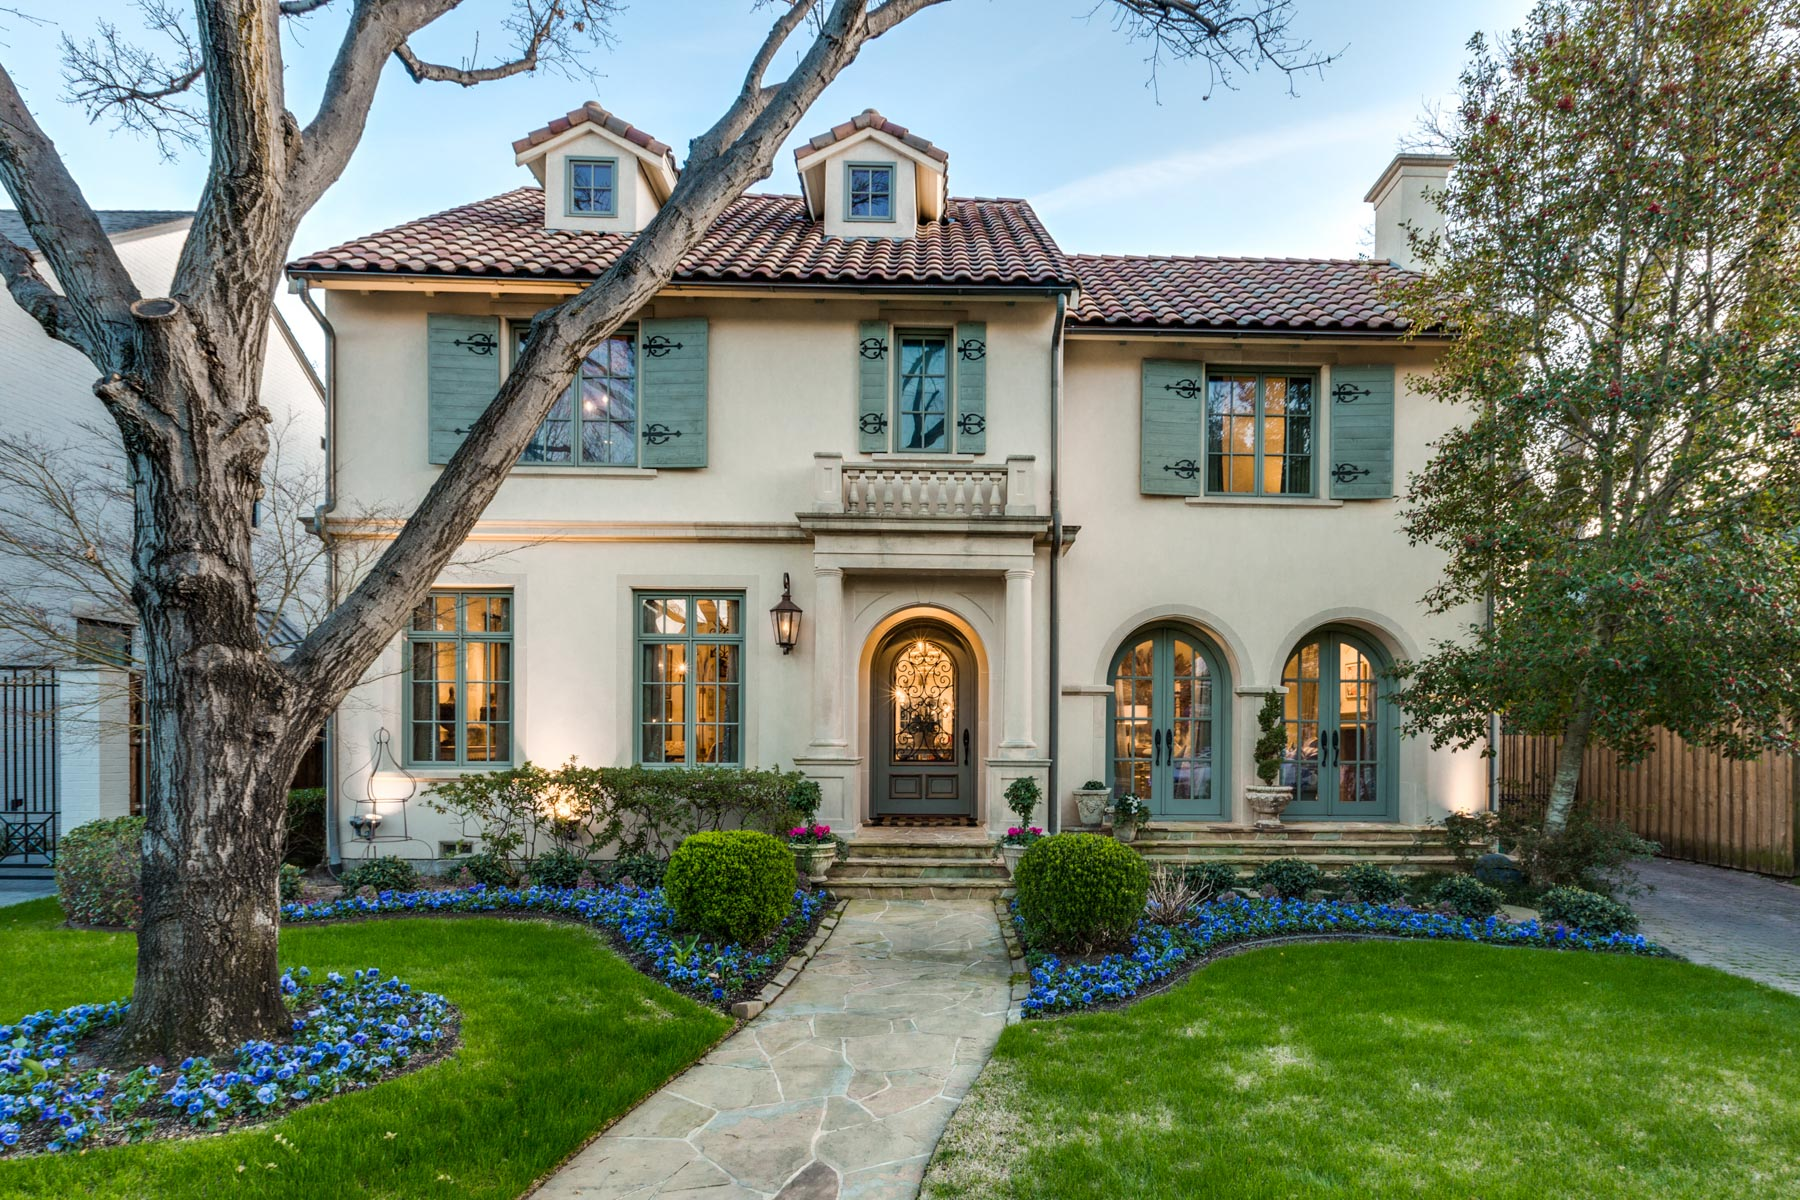 Single Family Home for Sale at Classic Home in the Heart of Highland Park 4325 Fairfax Avenue, Highland Park, Texas, 75205 United States